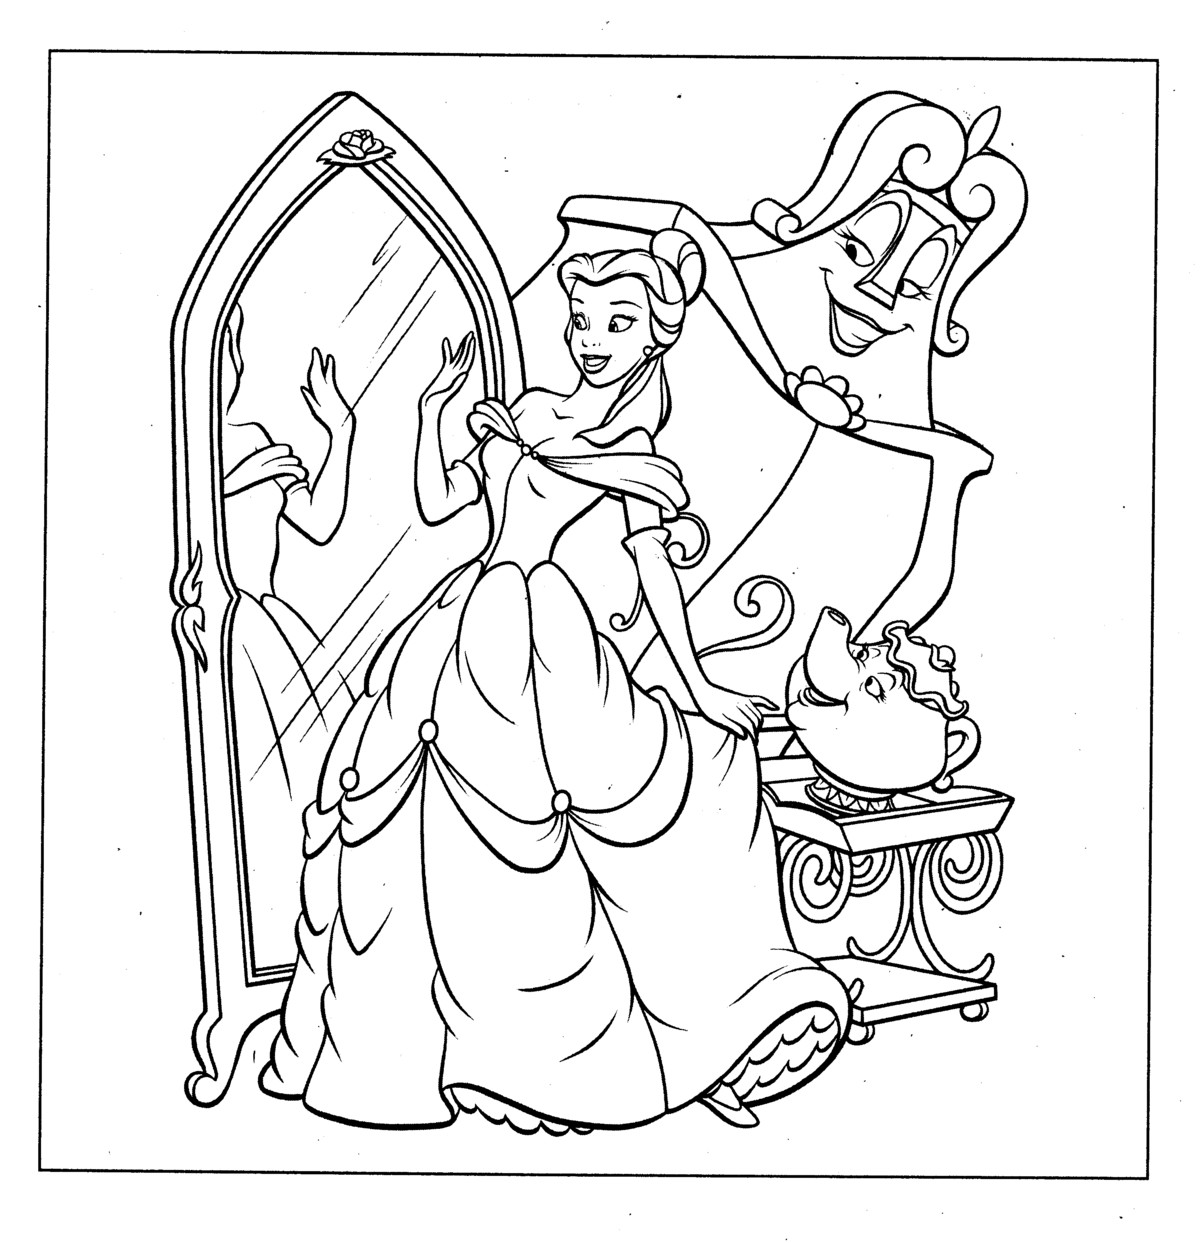 Free coloring disney princess pages - Disney Princess Color Pages